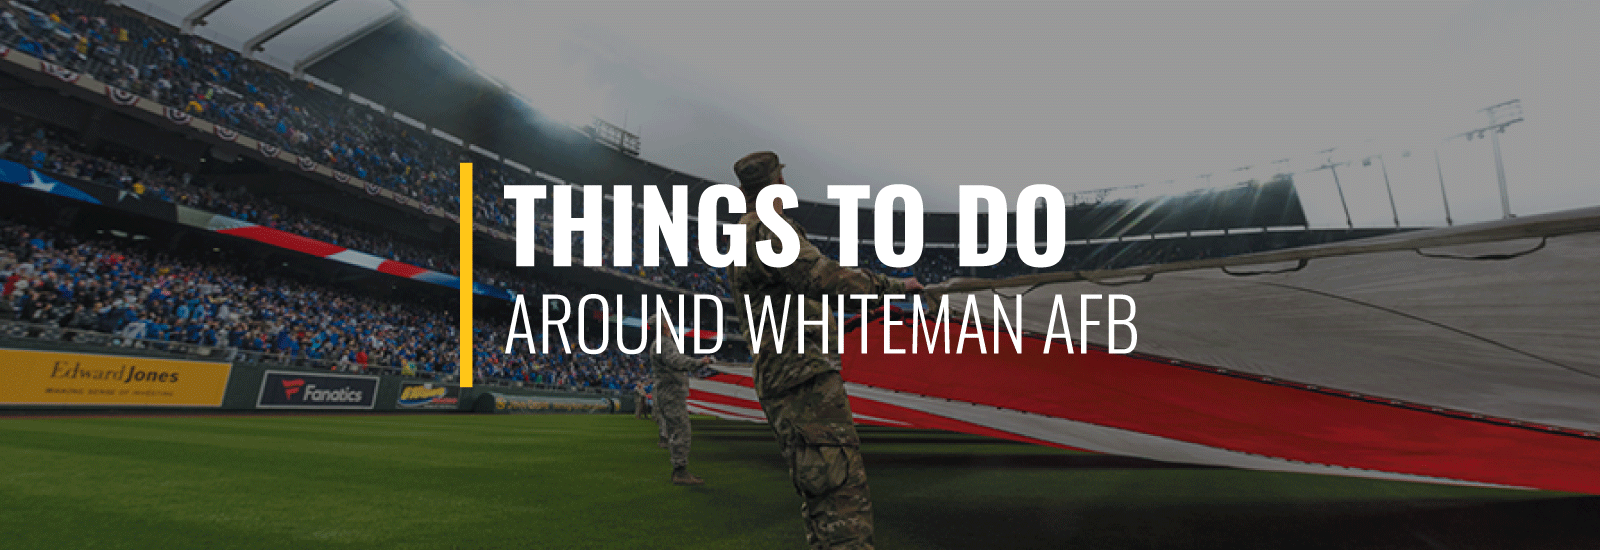 Things to Do Around Whiteman AFB